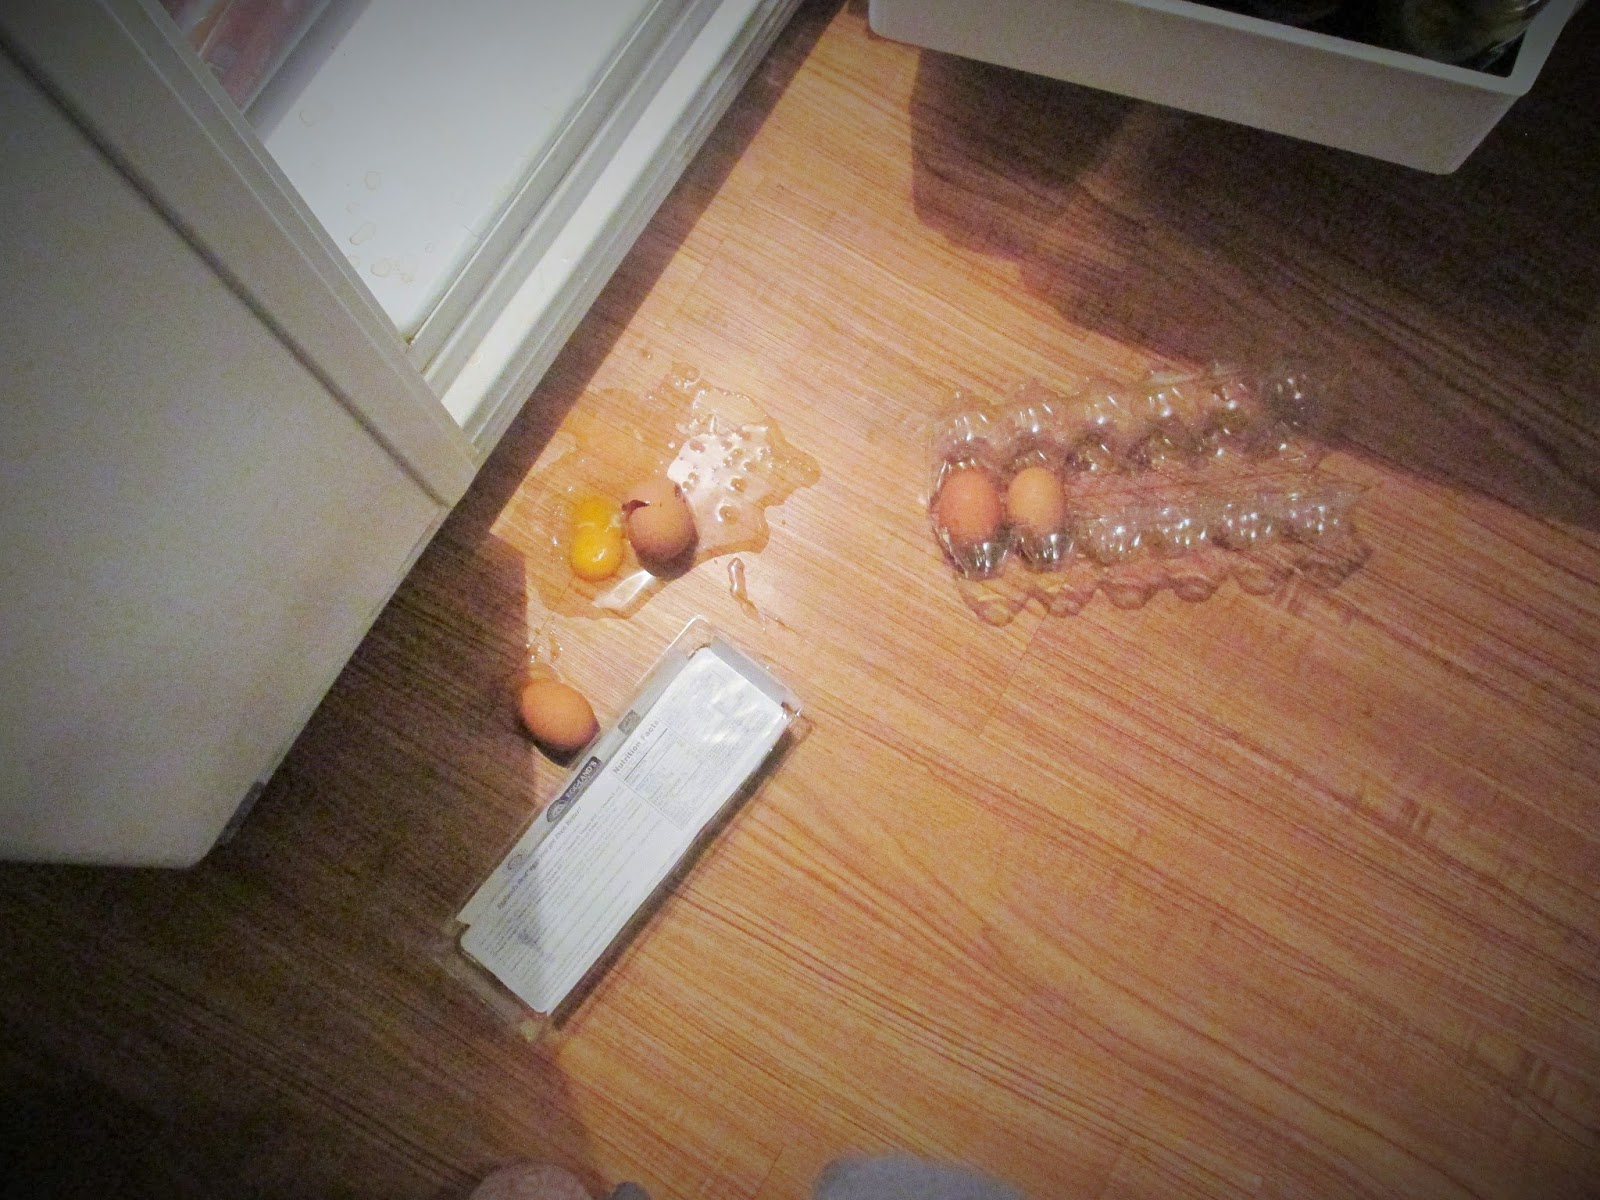 dropped dozen eggs by my refrigerator